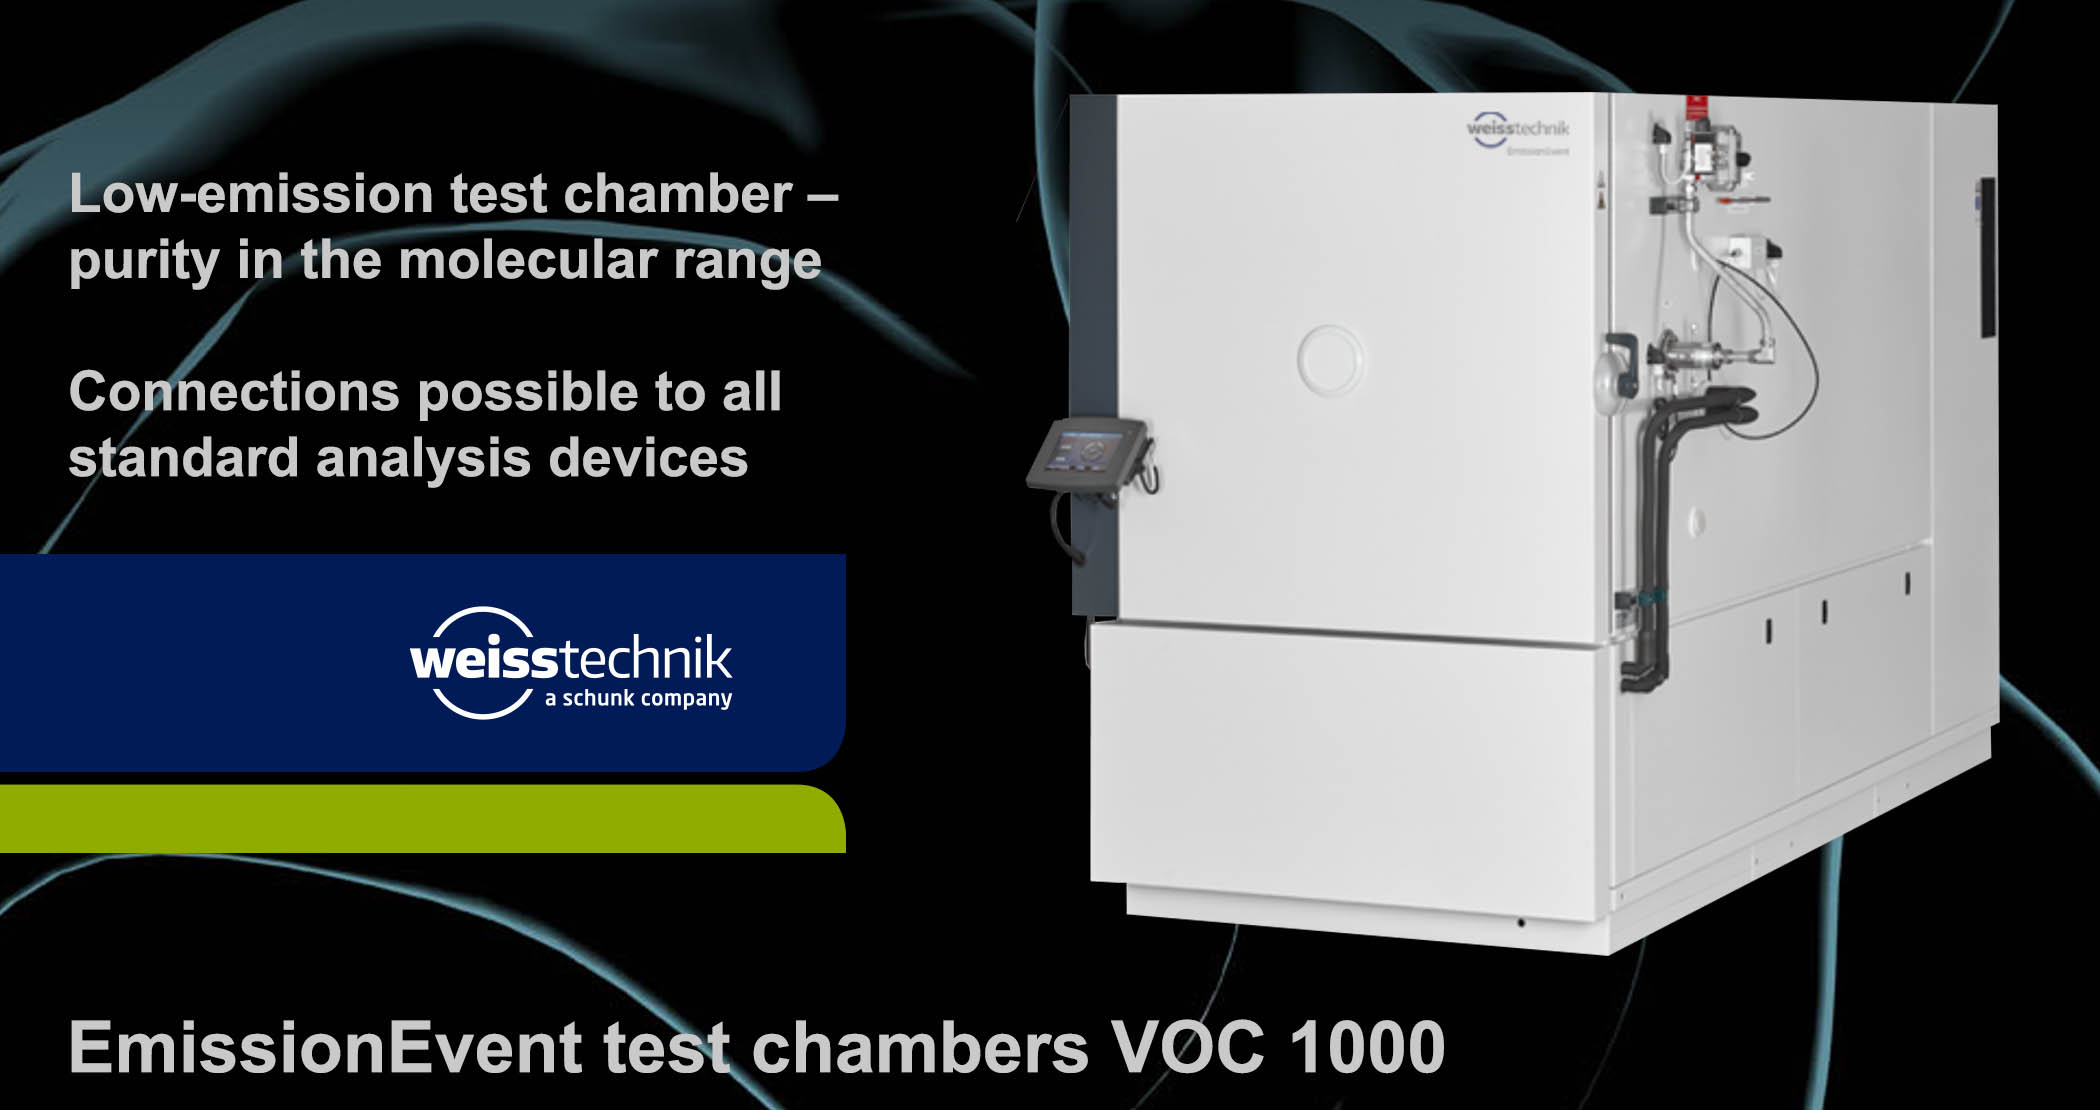 EmissionEvent test chamber VOC 1000